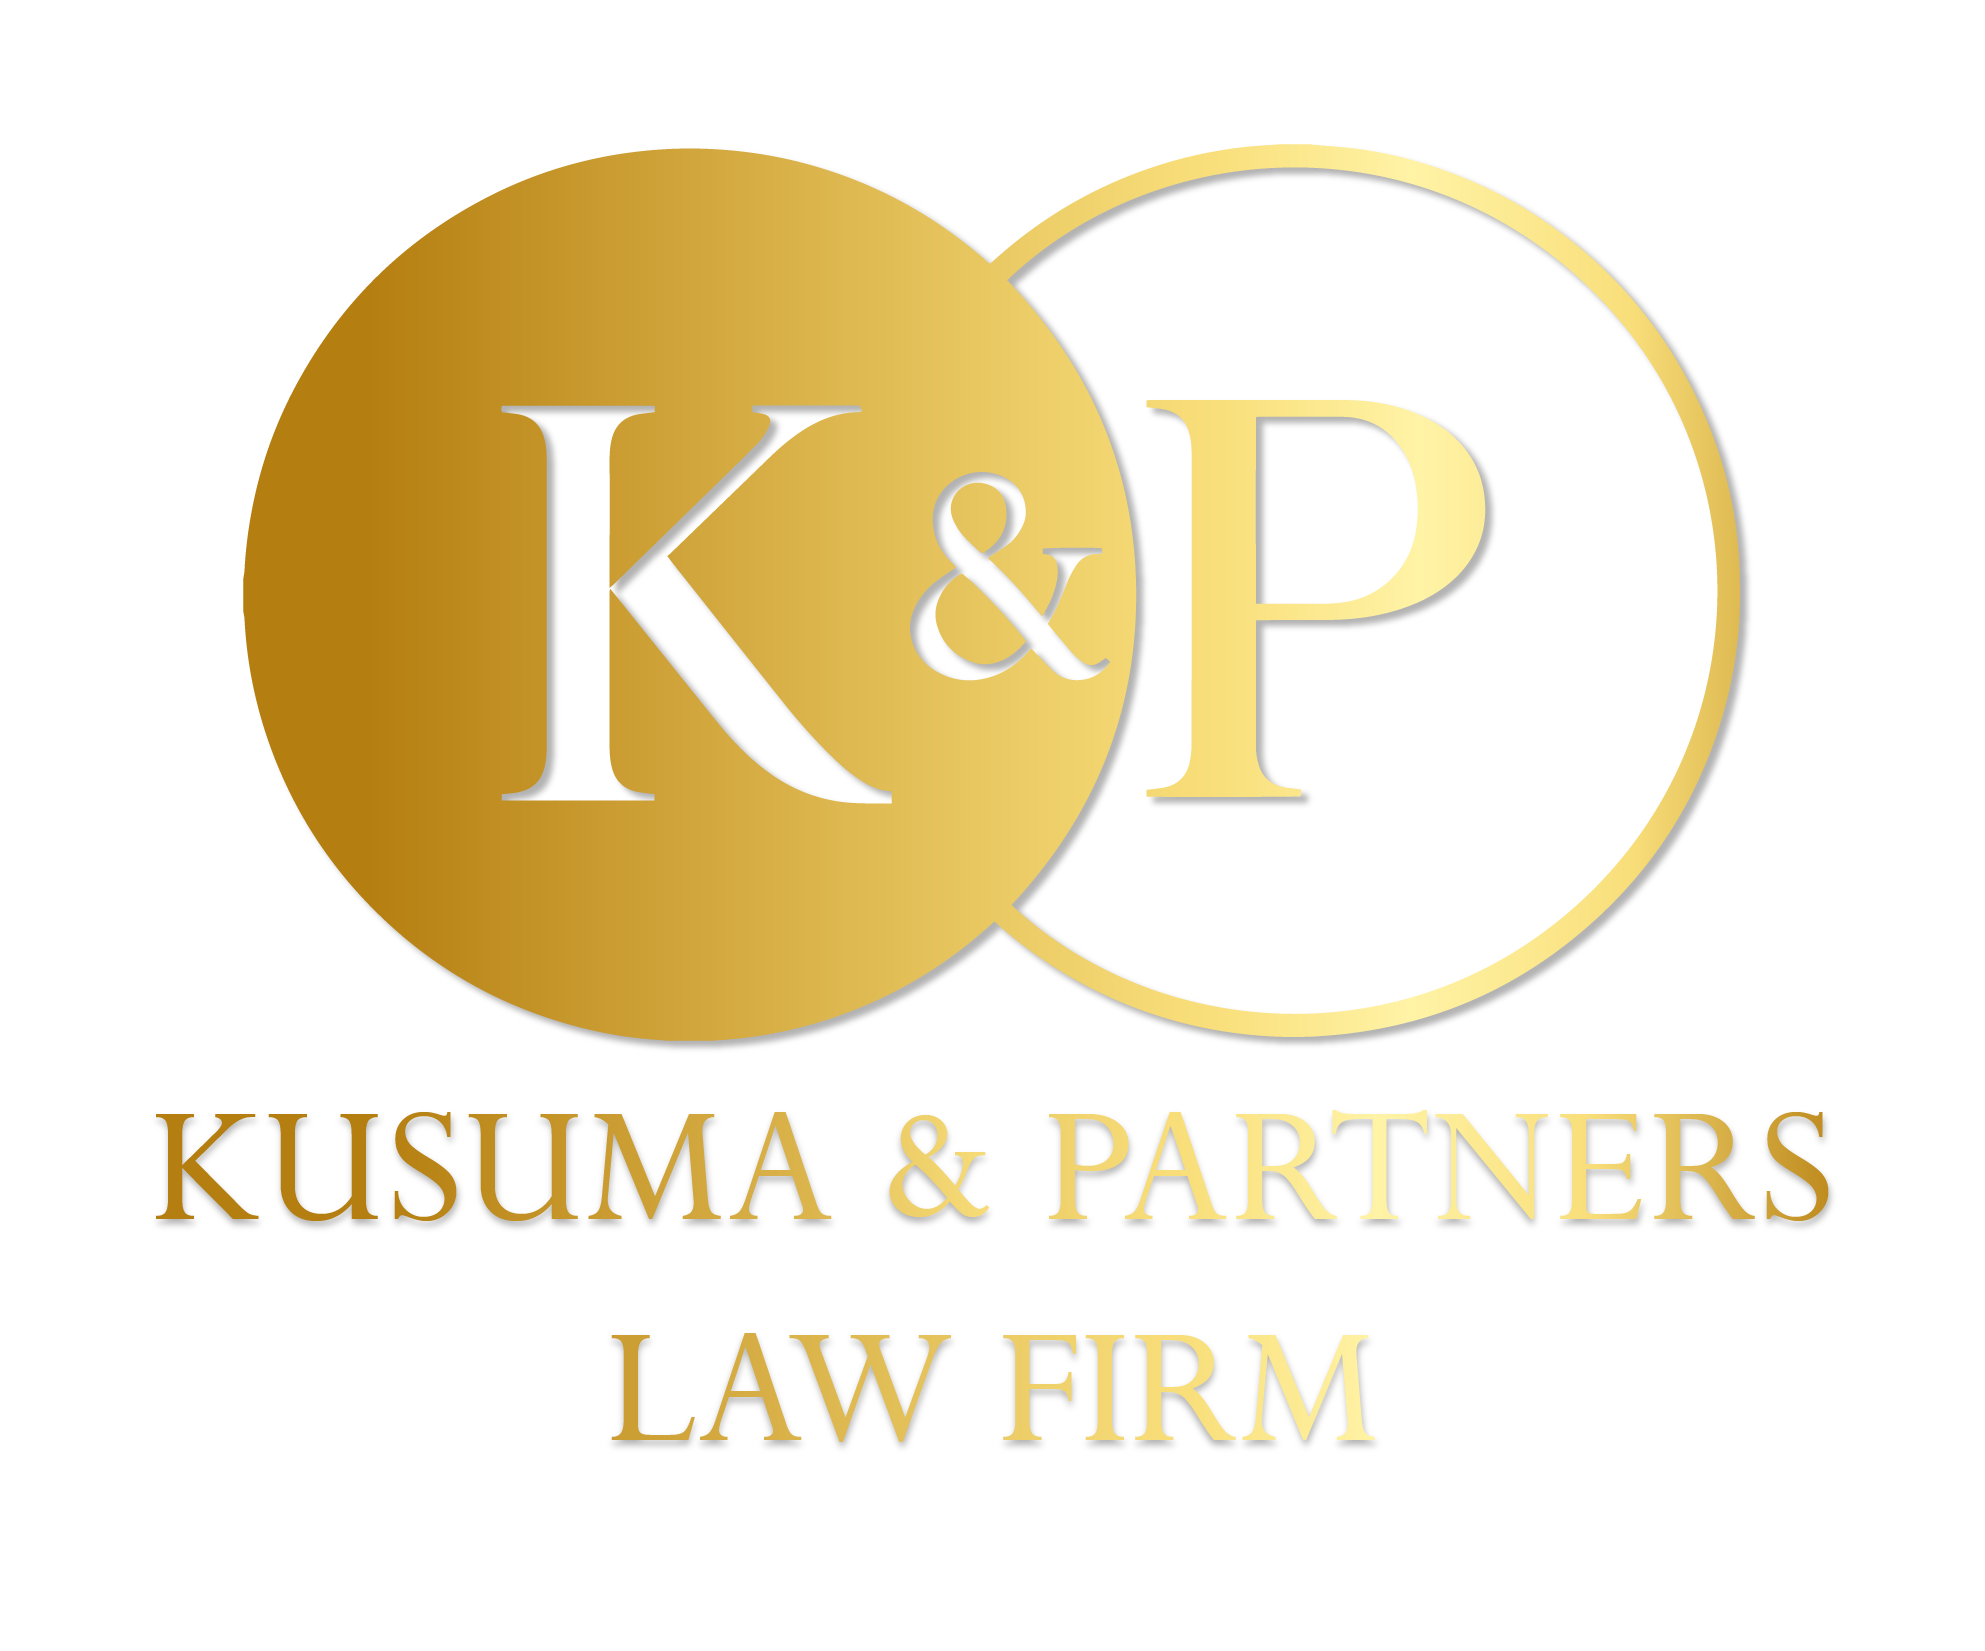 KUSUMA & PARTNERS LAW FIRM